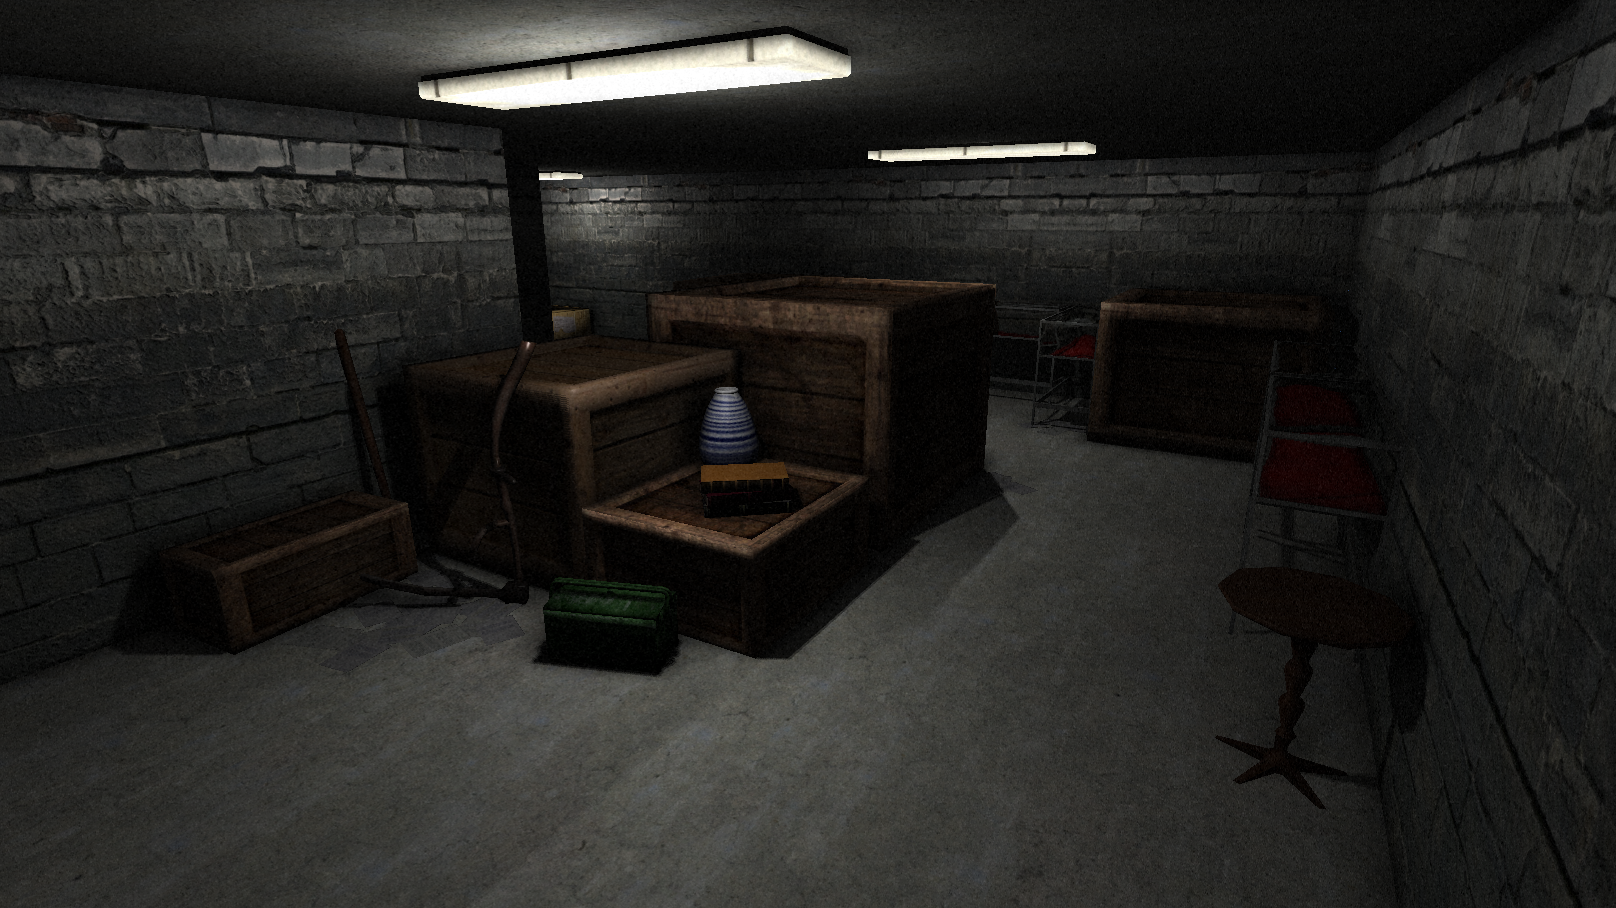 museum basement image - dark secrets